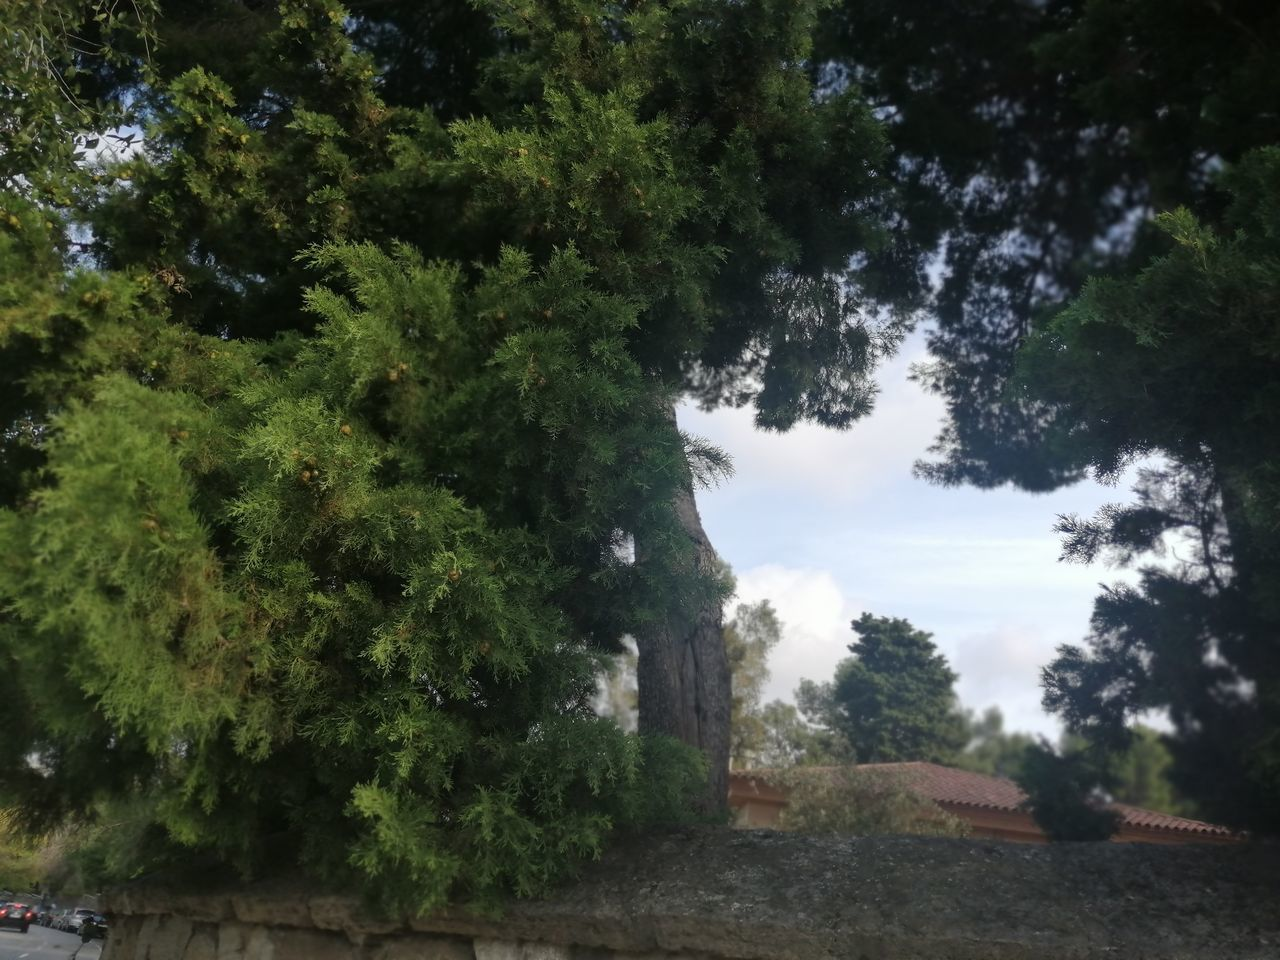 plant, tree, nature, growth, green color, no people, sky, day, outdoors, beauty in nature, tranquility, cloud - sky, land, landscape, tranquil scene, architecture, green, environment, scenics - nature, park